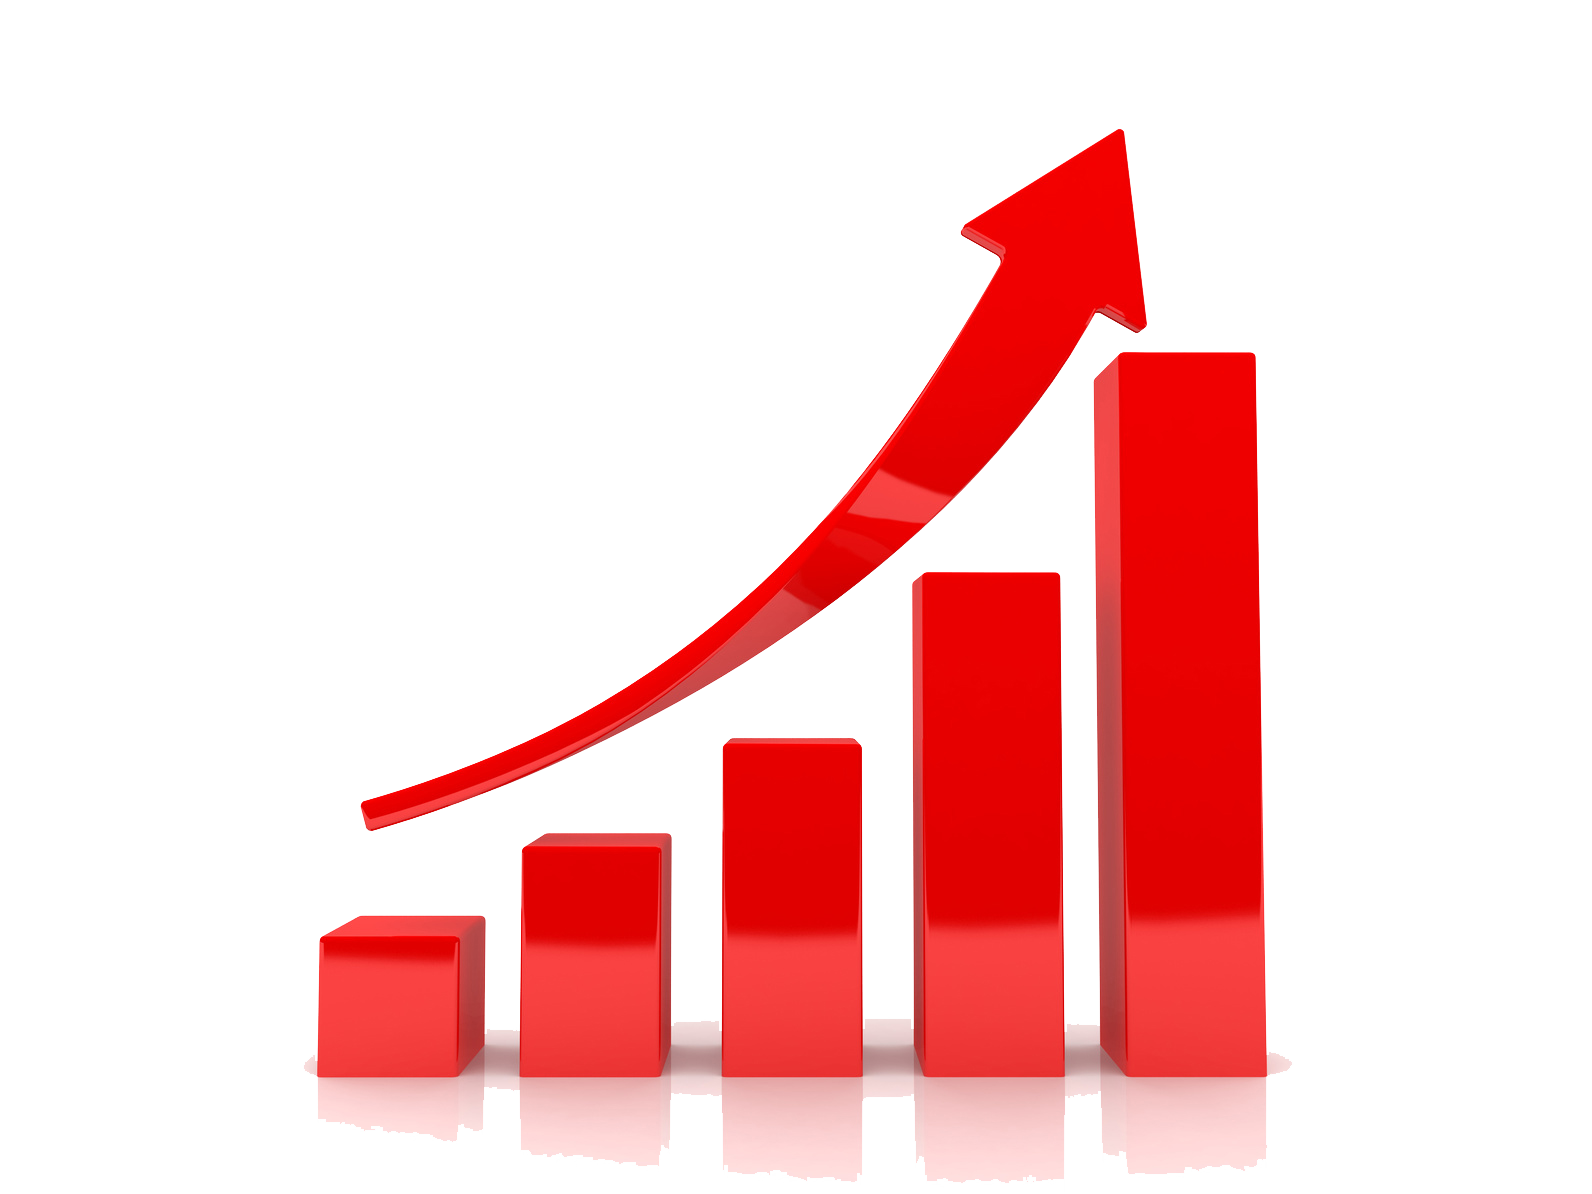 Business chart png transparent. Clipart arrows growth